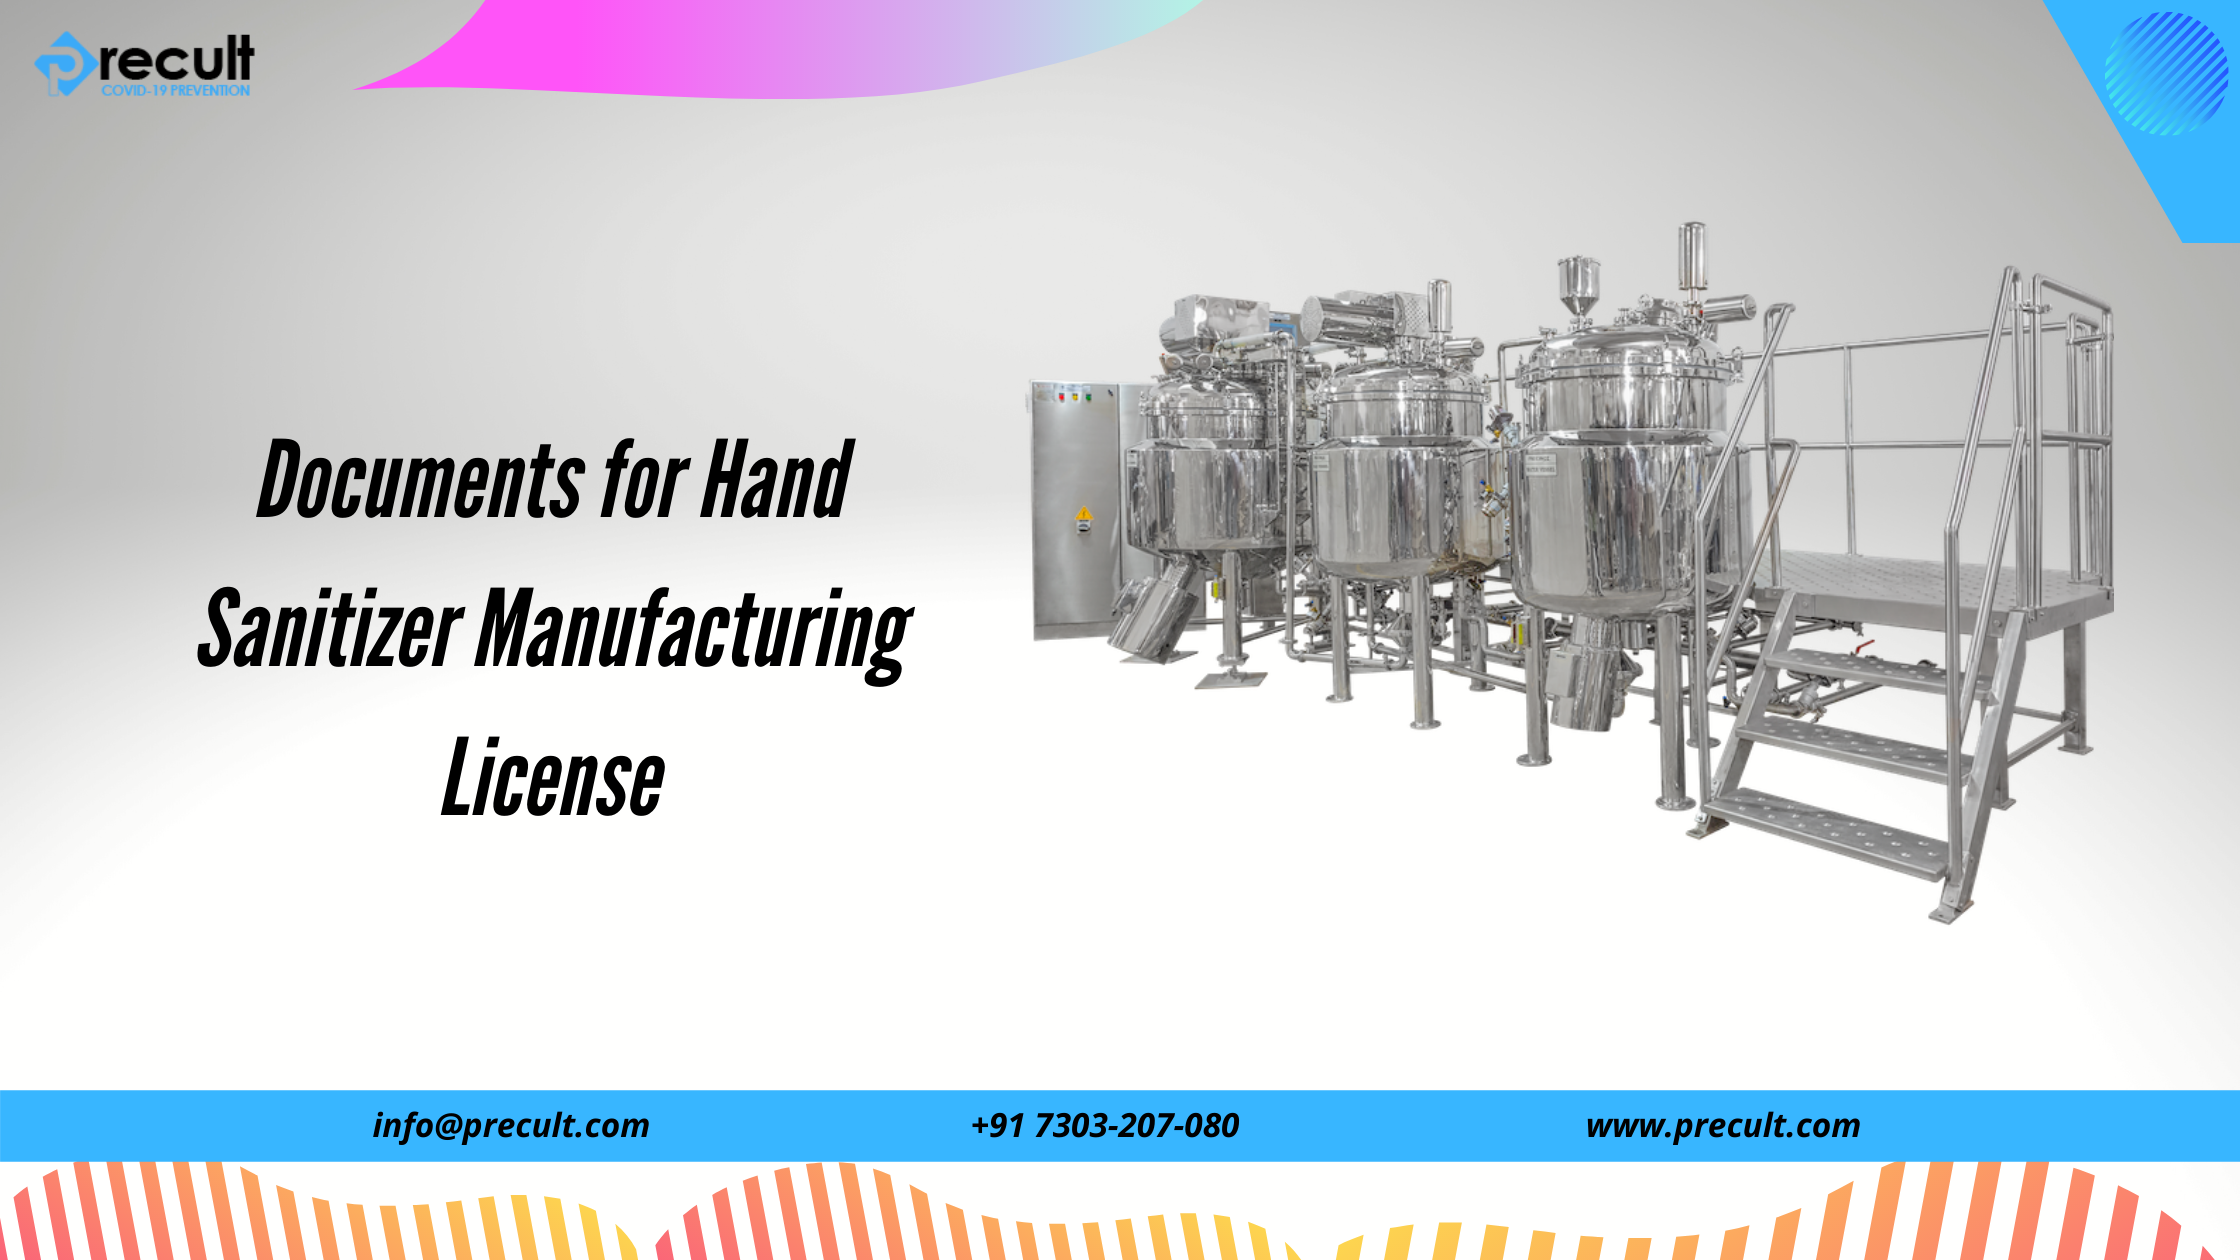 Documents for Hand Sanitizer Manufacturing License